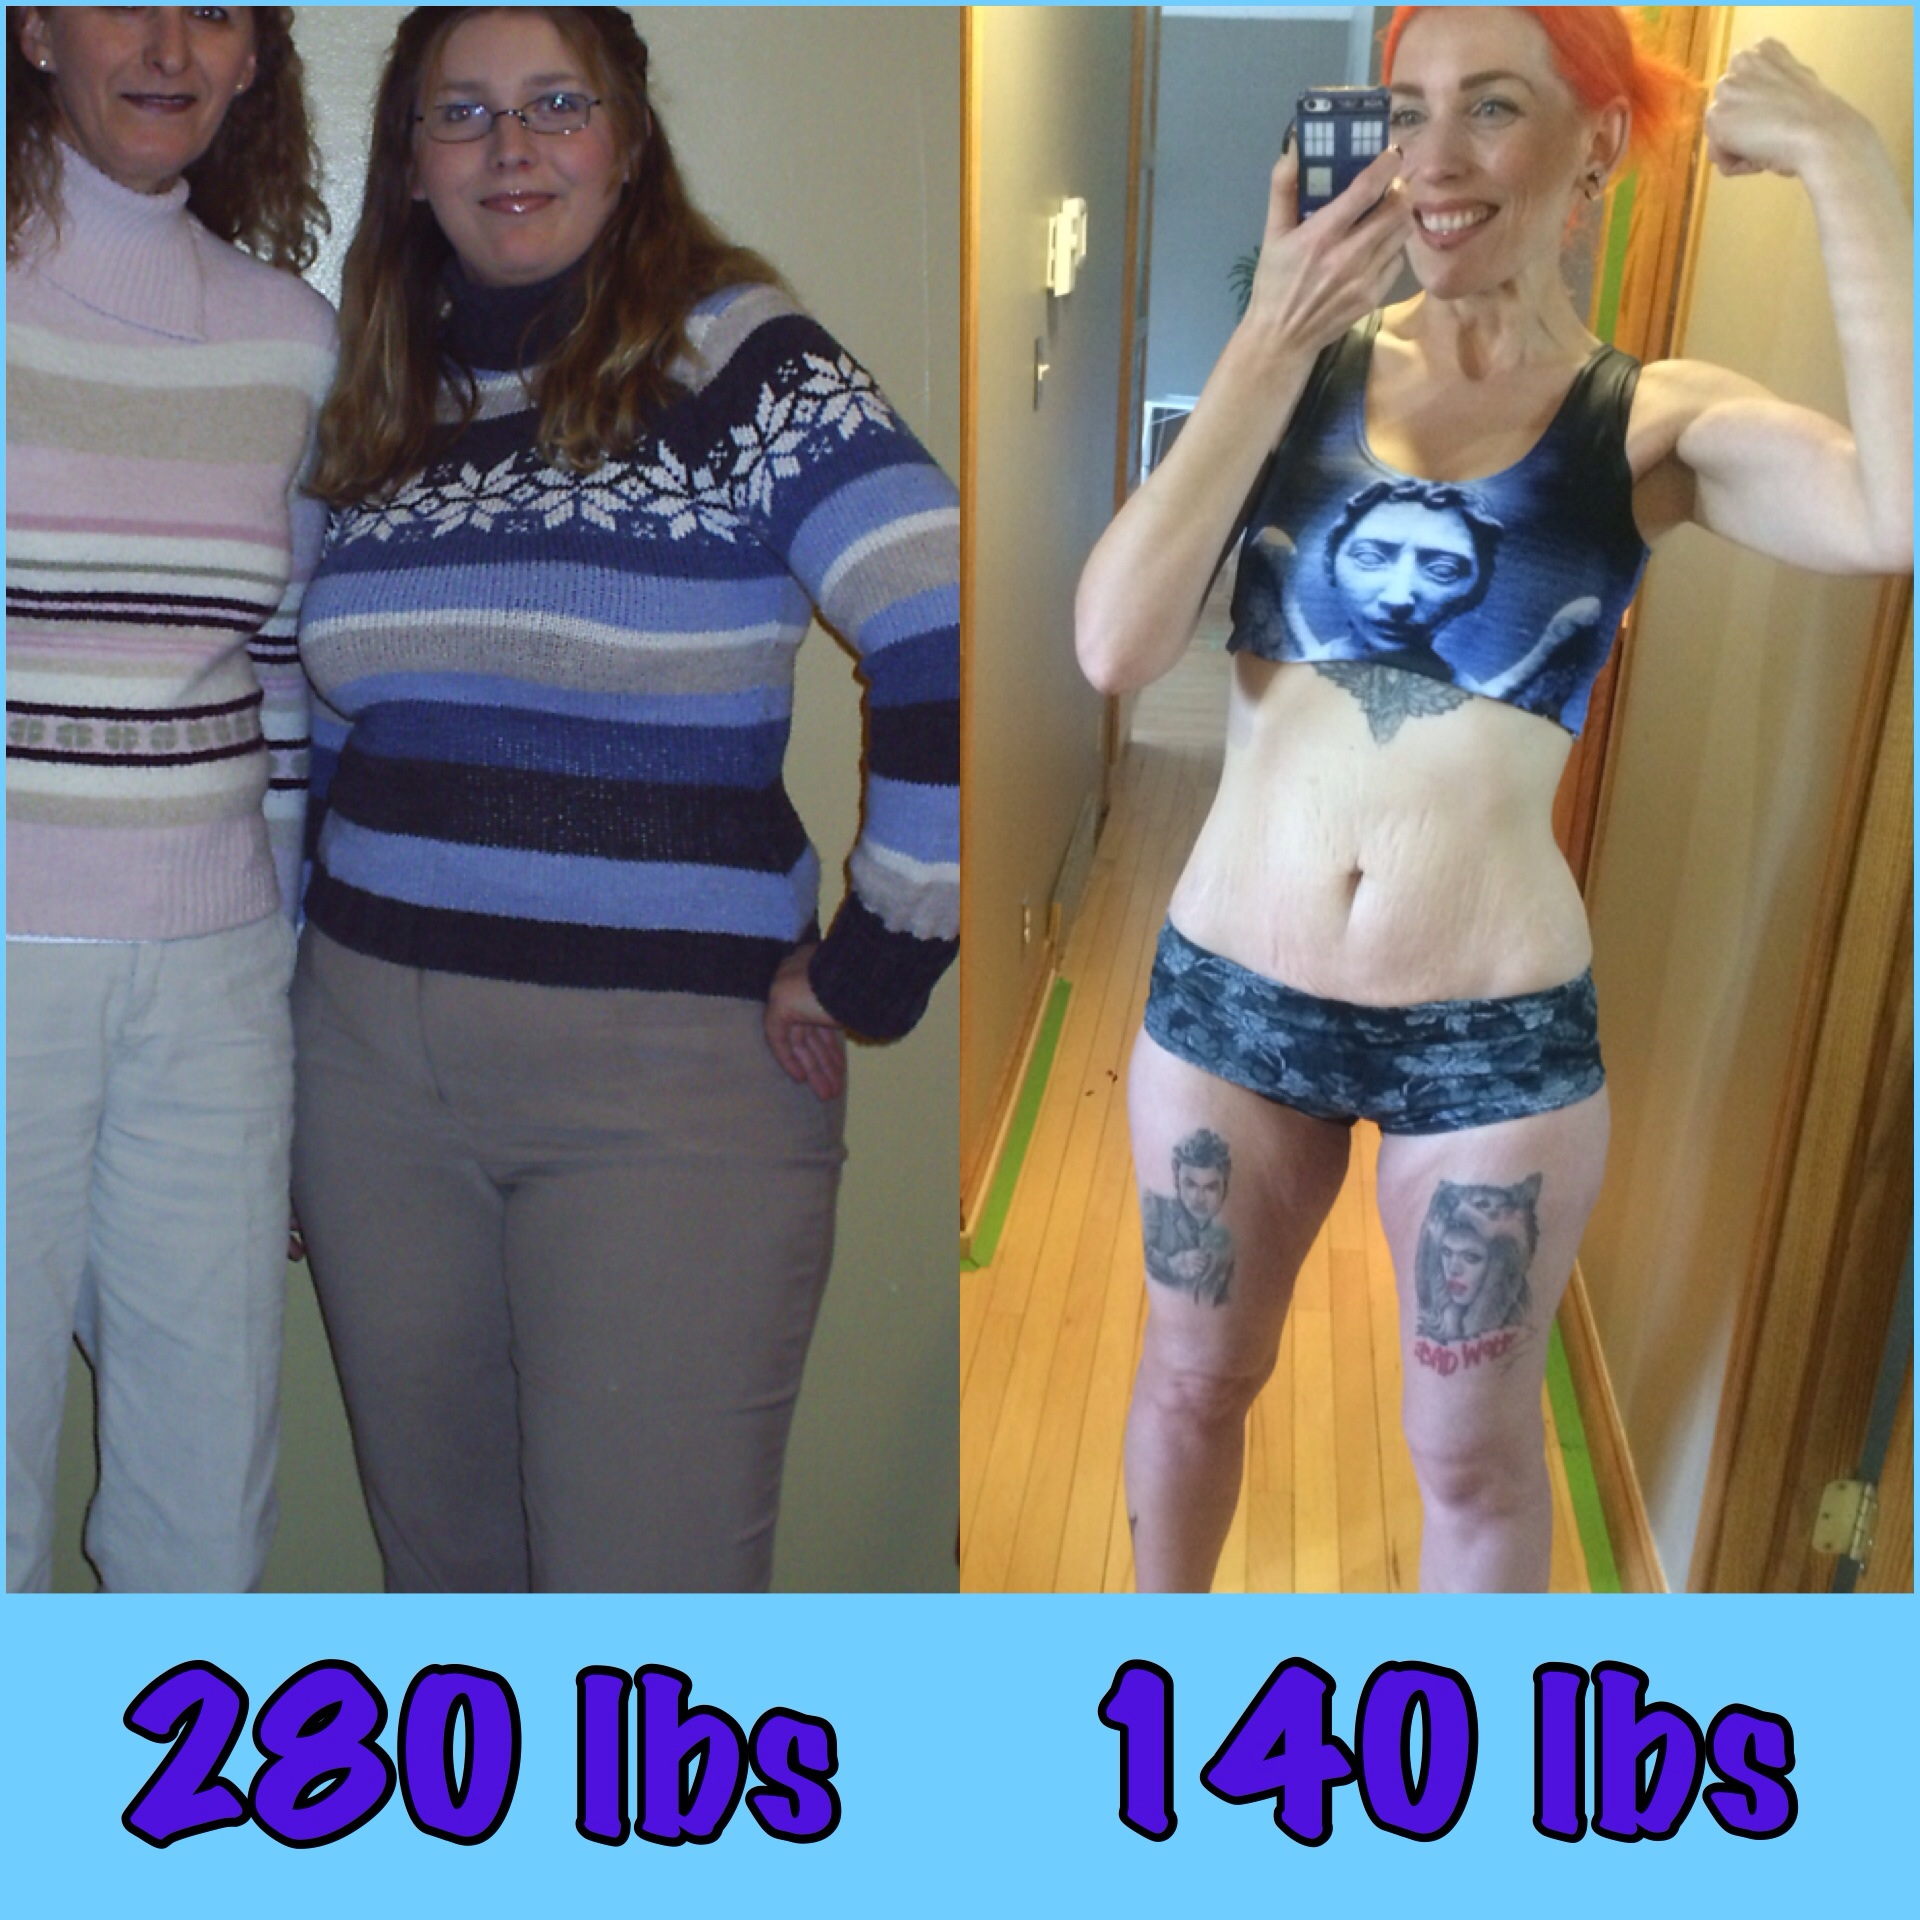 I lost 140 pounds eating vegan! Read my plant based weight loss transformation success story with before and after pictures along with more pics for motivation. My challenge was fast easy vegetarian meals and healthy vegan weightloss diet recipes. Tips, results and articles can help you lose those first or last 10 pounds.